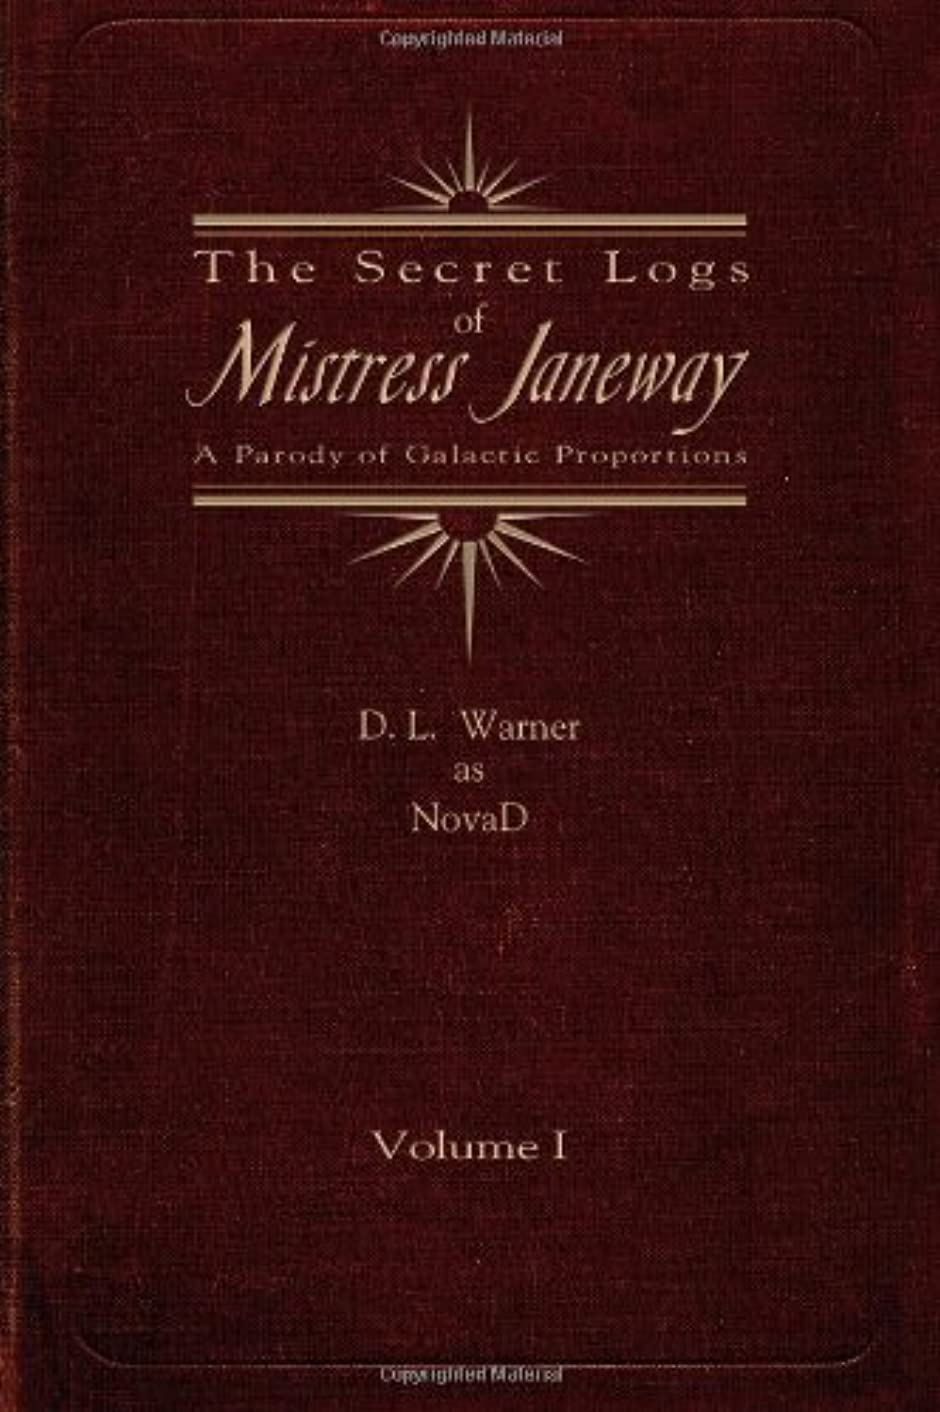 The Secret Logs of Mistress Janeway: A Parody of Galactic Proportions, Volume 1